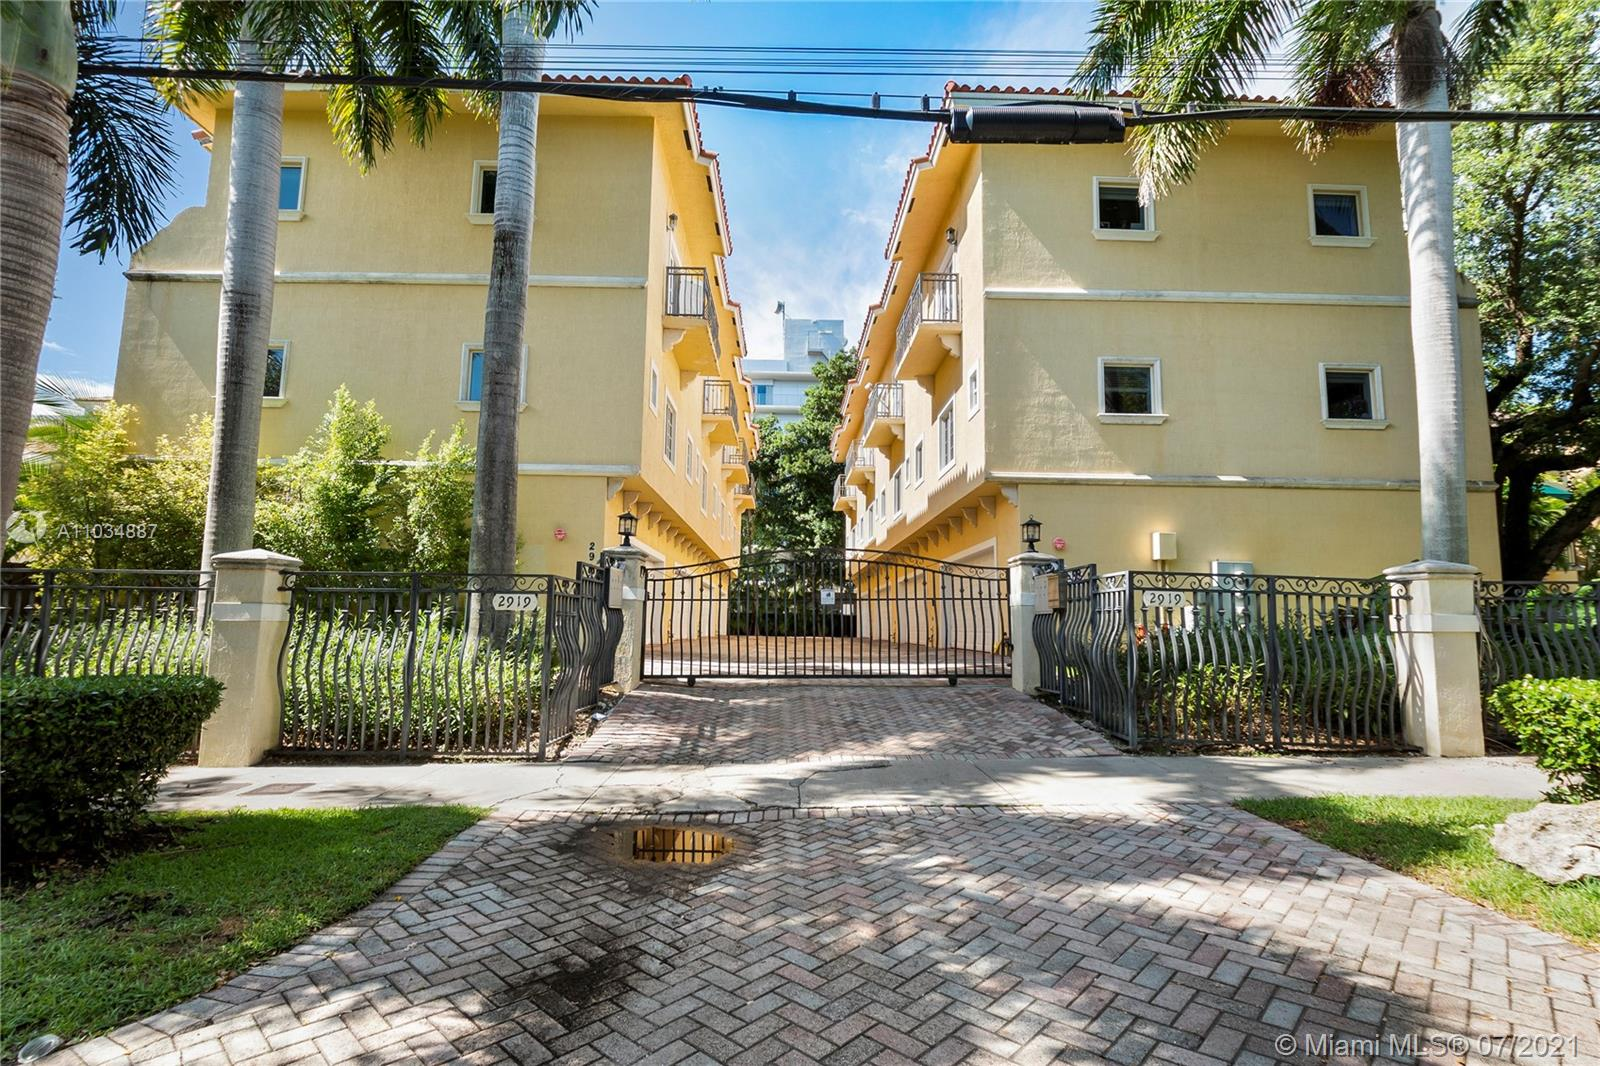 This is a gorgeous, tri-level townhome, just a short walk from Coconut Grove village with incredible restaurants, art galleries and cafes! Pet friendly complex! Incredible location, just a short drive to downtown, Coral Gables and Key Biscayne!  Updated, modern bathrooms & impact glass throughout home. Natural light fills the rooms.  Italian European-style kitchen that features wood cabinetry, quartz countertops & stainless steel appliances. Covered balconies and ground level 2 car-garage with loads of storage with a washer/dryer! Not located in a flood zone. And best of all, low HOA at $320.00 per month.   A must see! ***